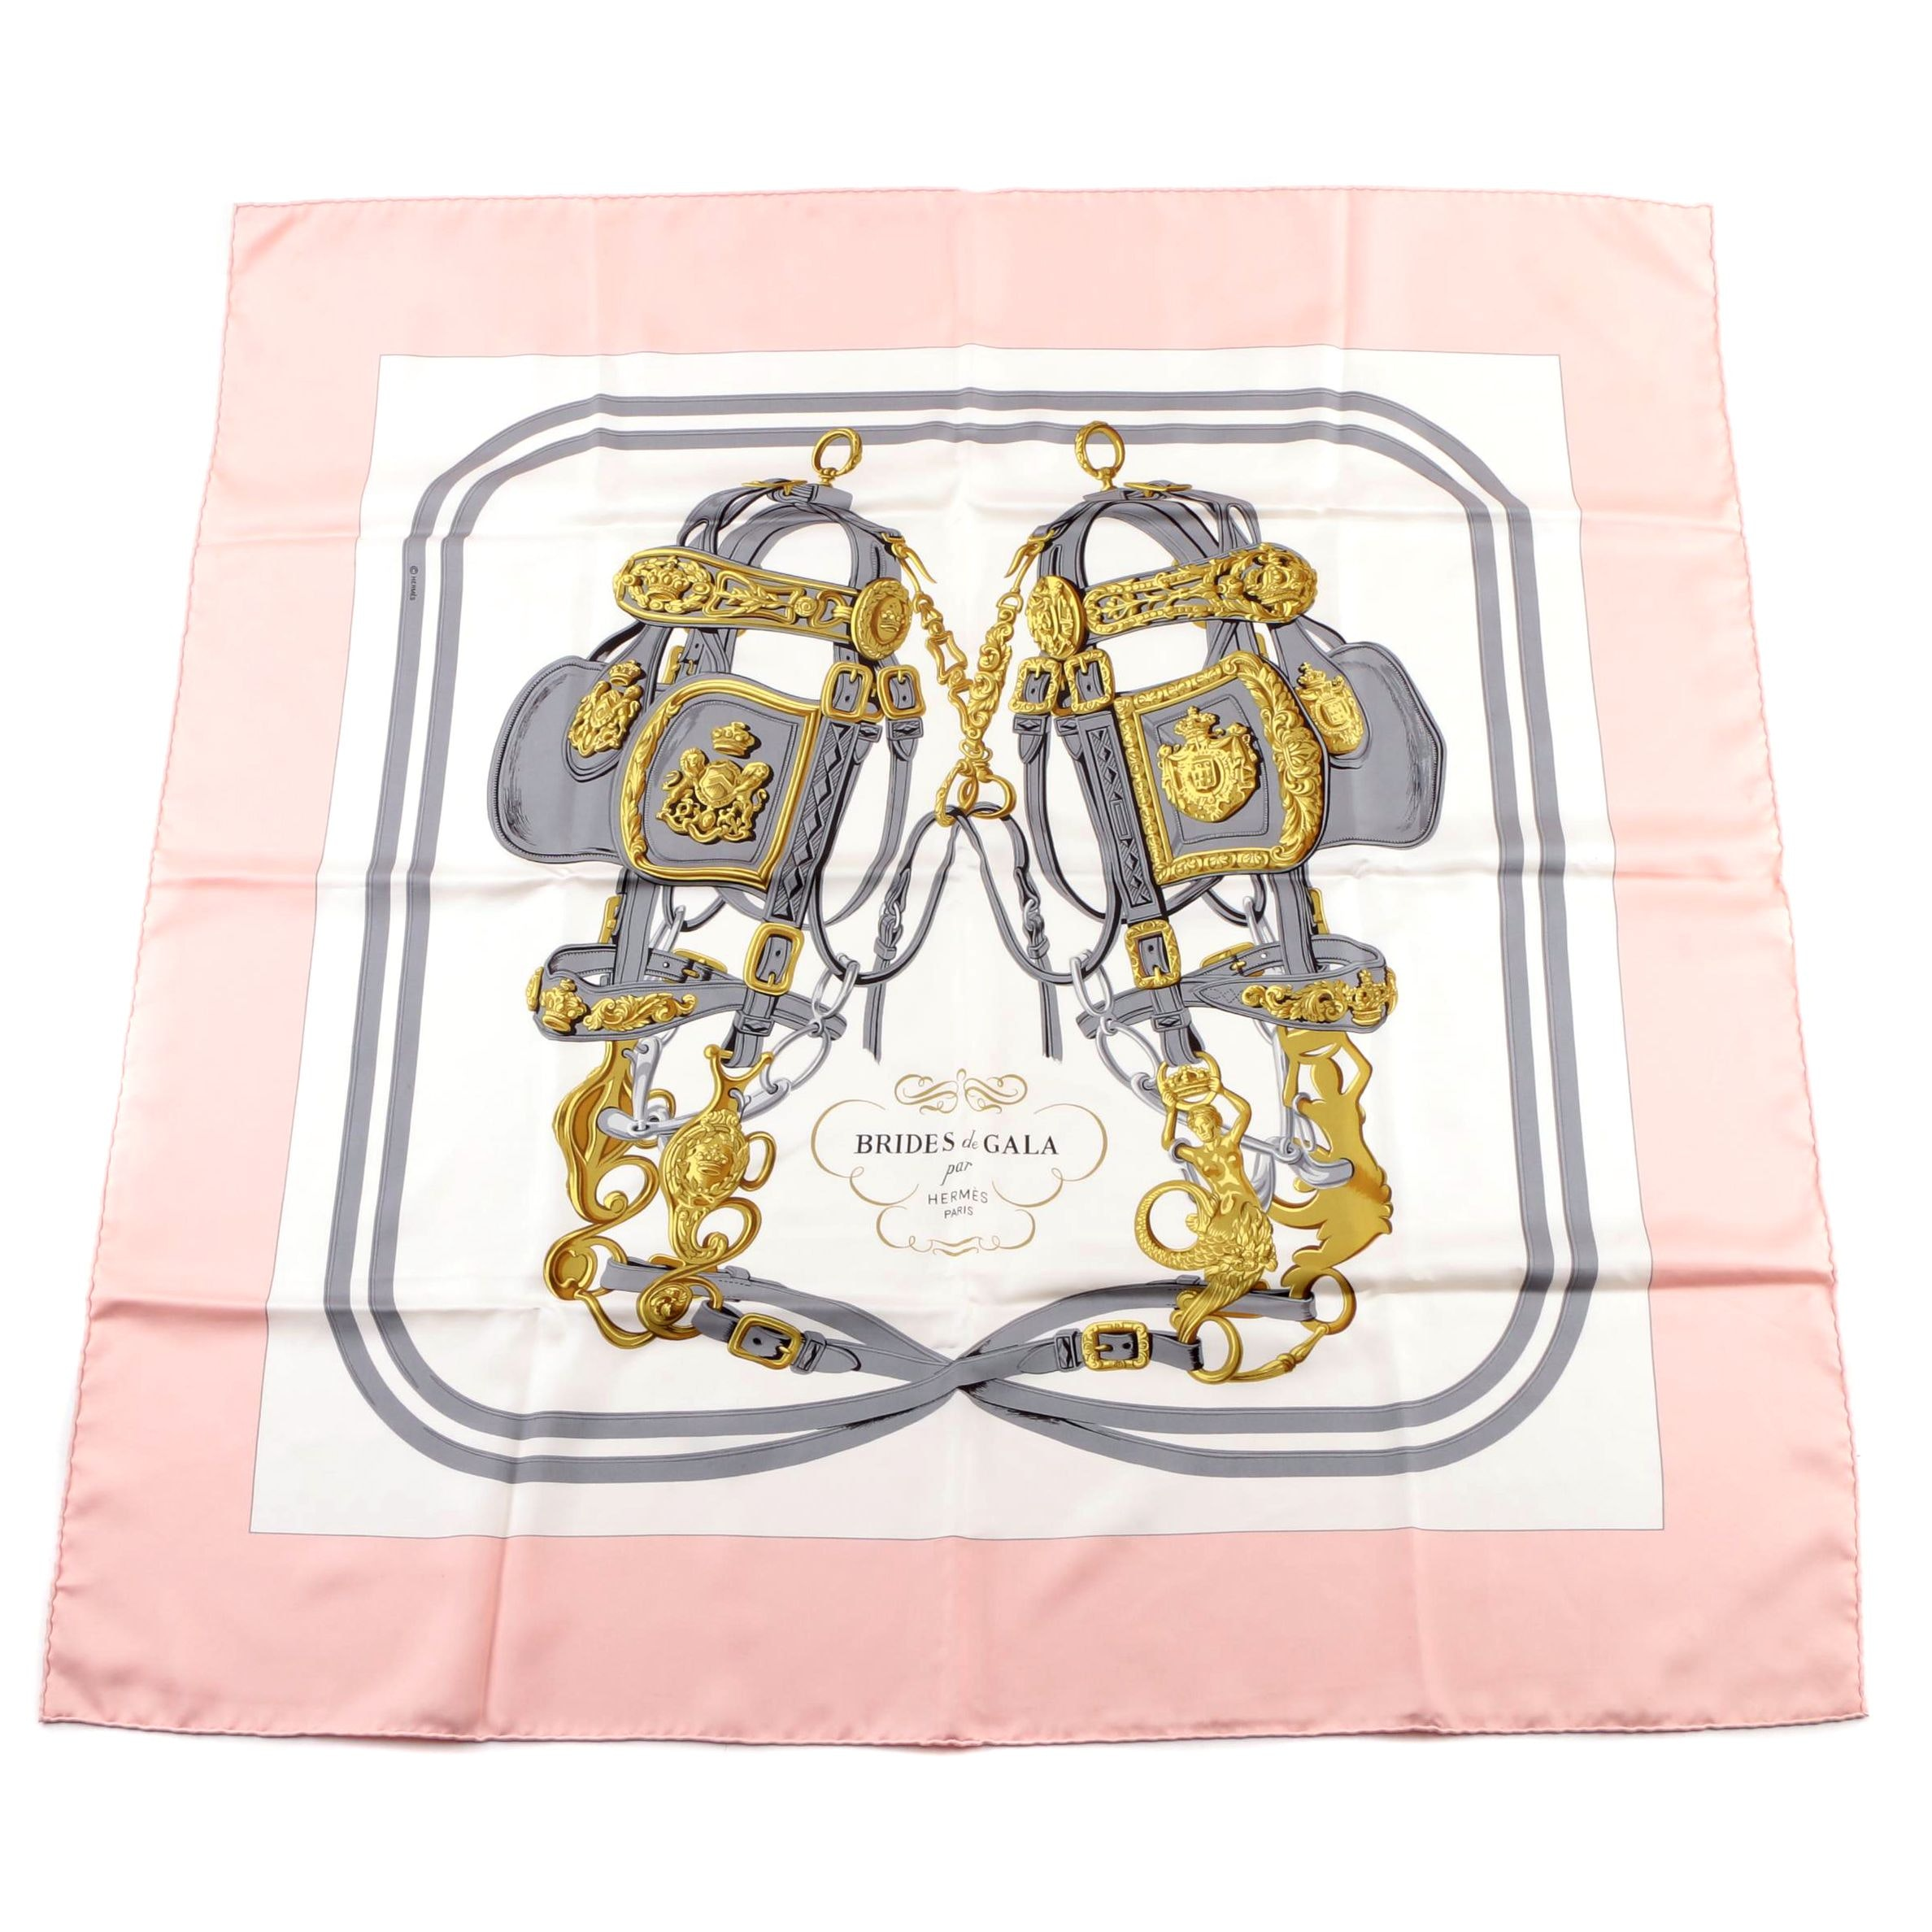 "Hermès of Paris ""Brides de Gala"" Silk Twill Scarf"